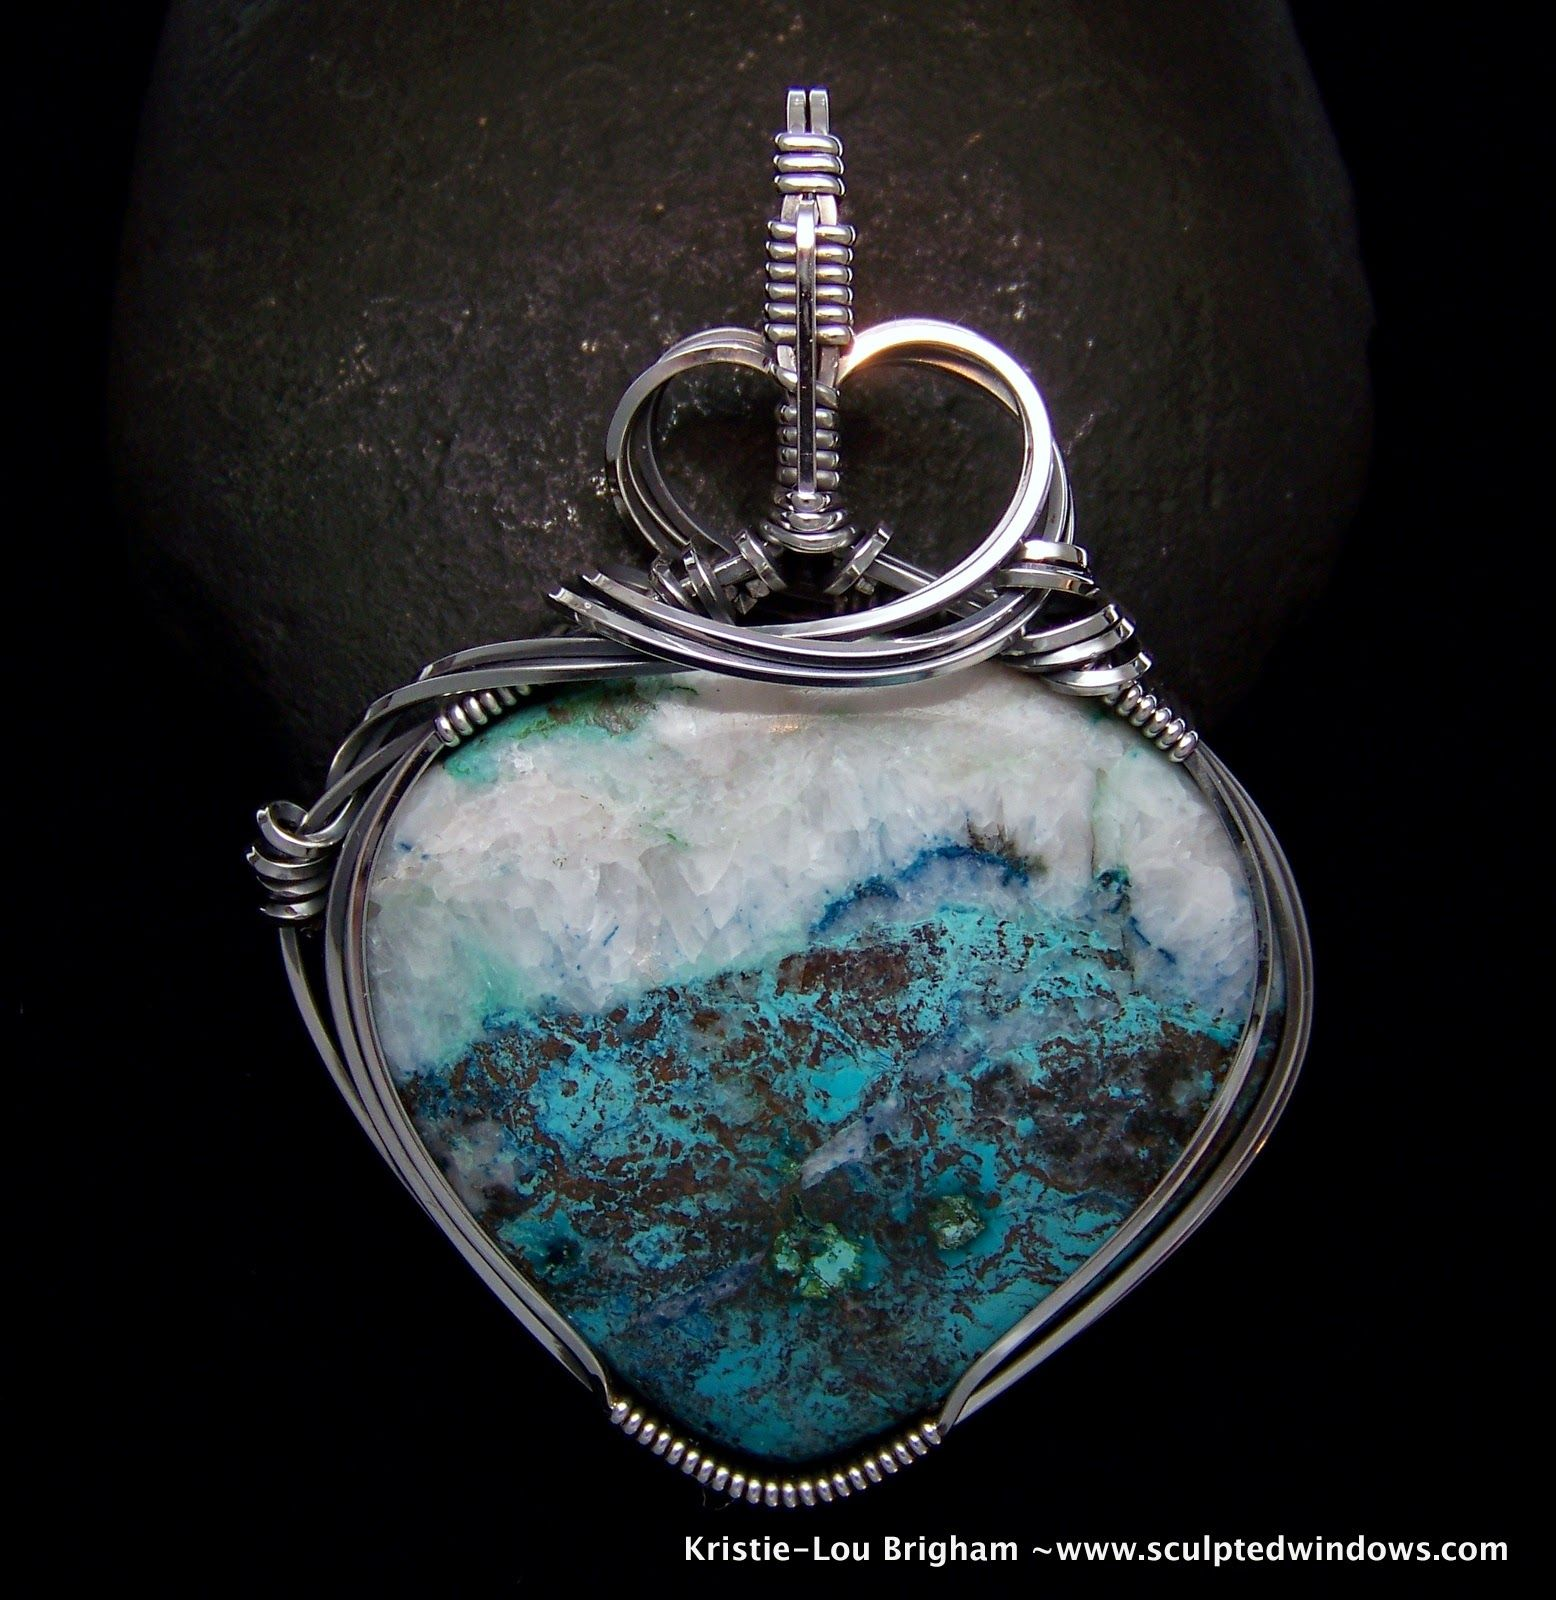 Pin by Maria Brennan on Wire Wrapping - Jewelry Making   Pinterest ...